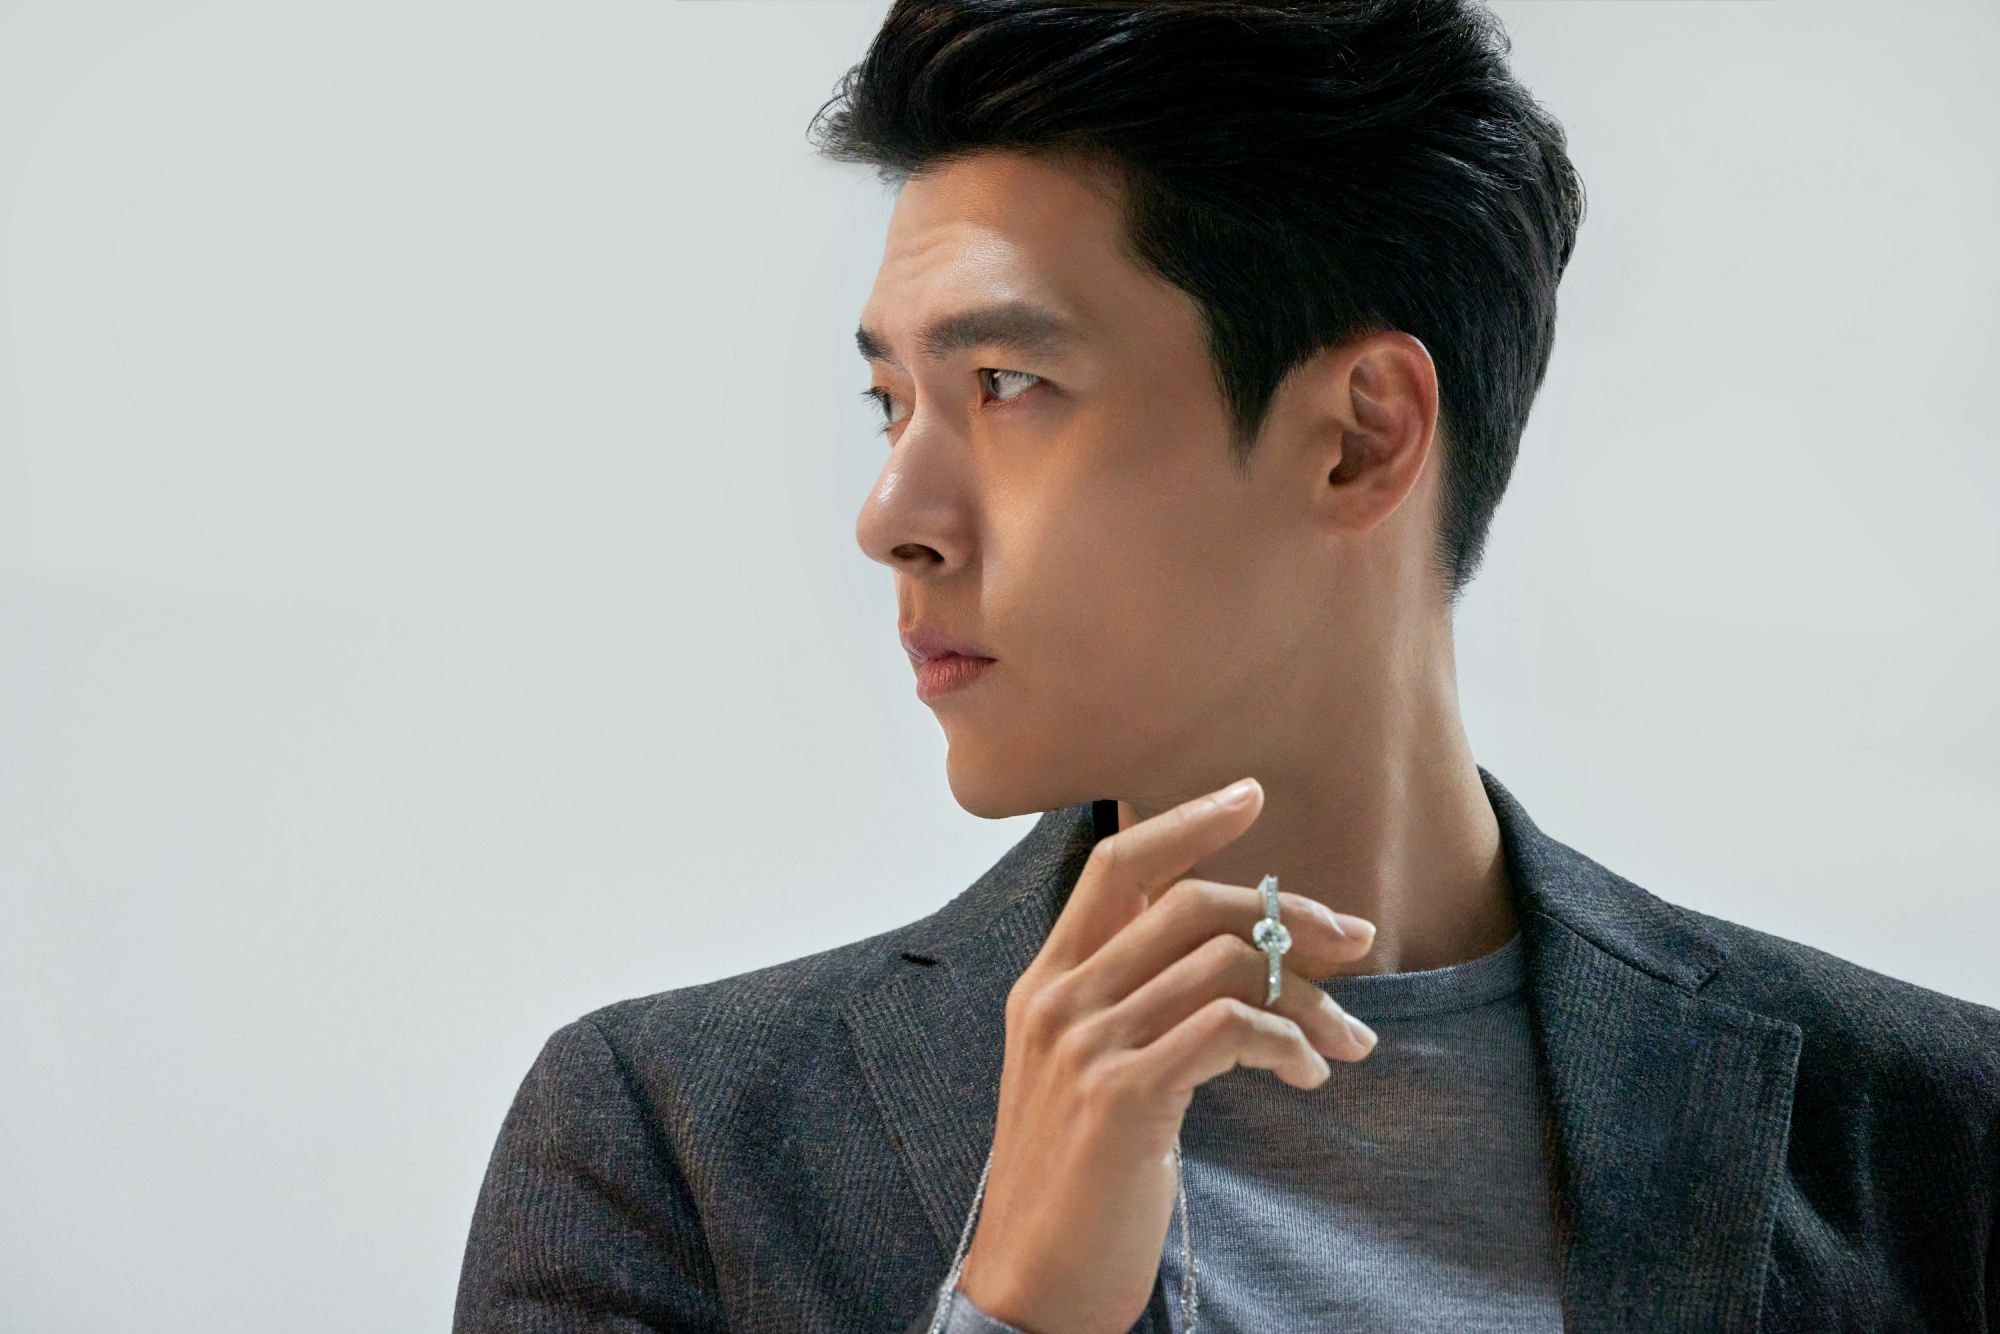 Hyun Bin collaborates with Chow Tai Fook for a special collection